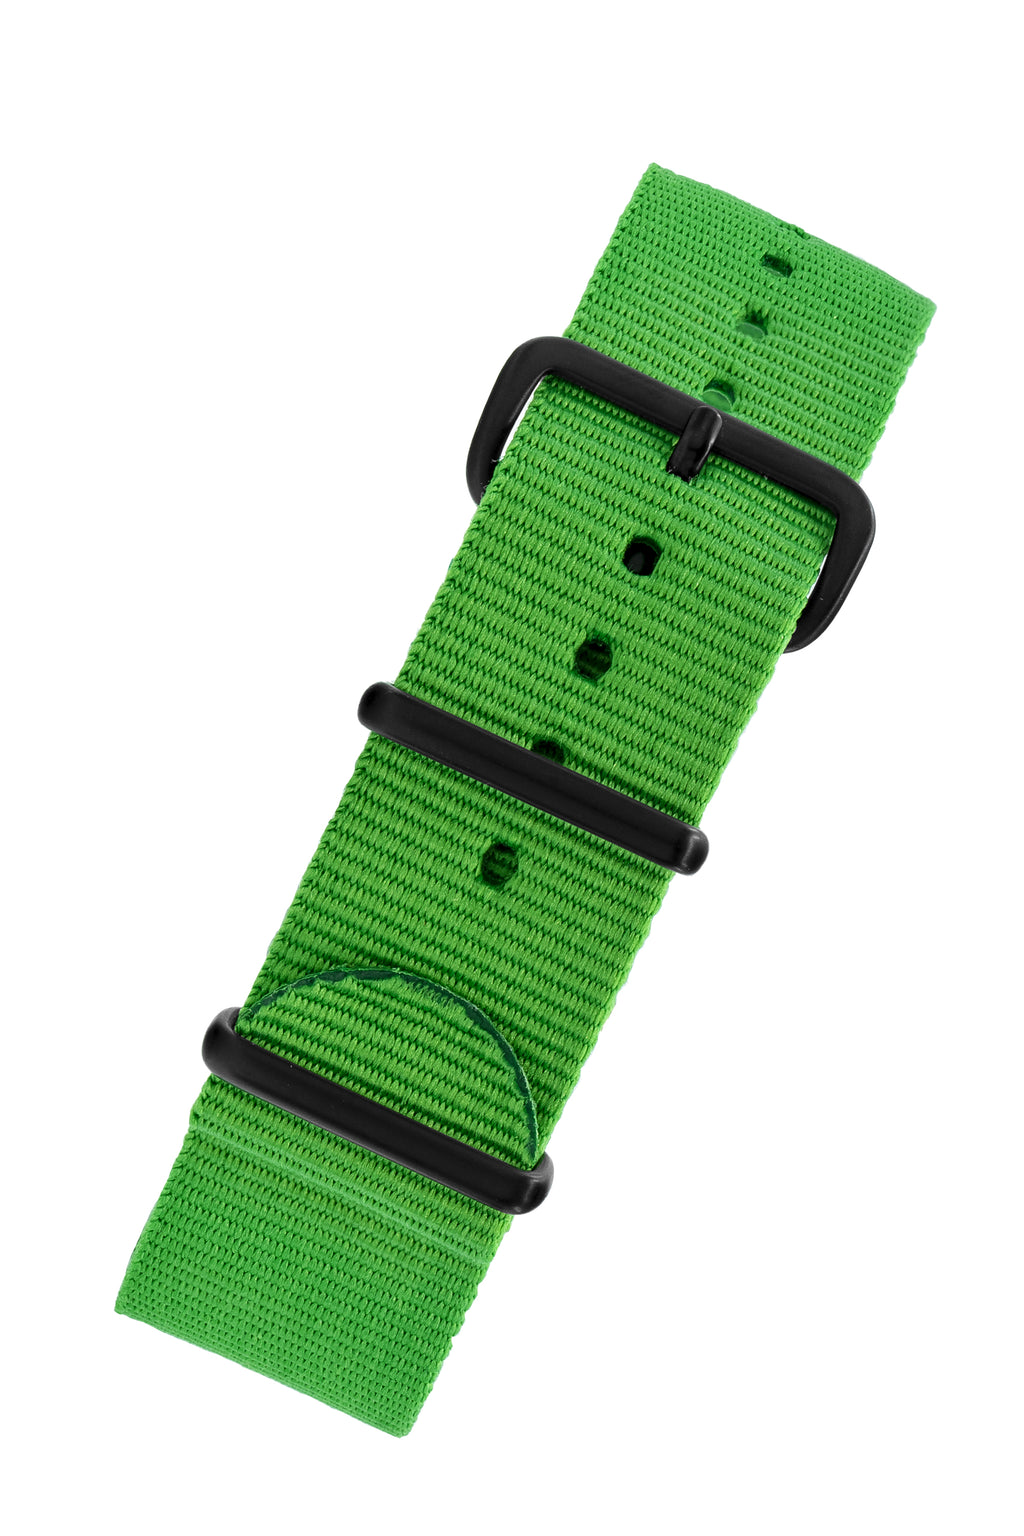 NATO Watch Straps in BRIGHT GREEN with PVD Buckle and Keepers